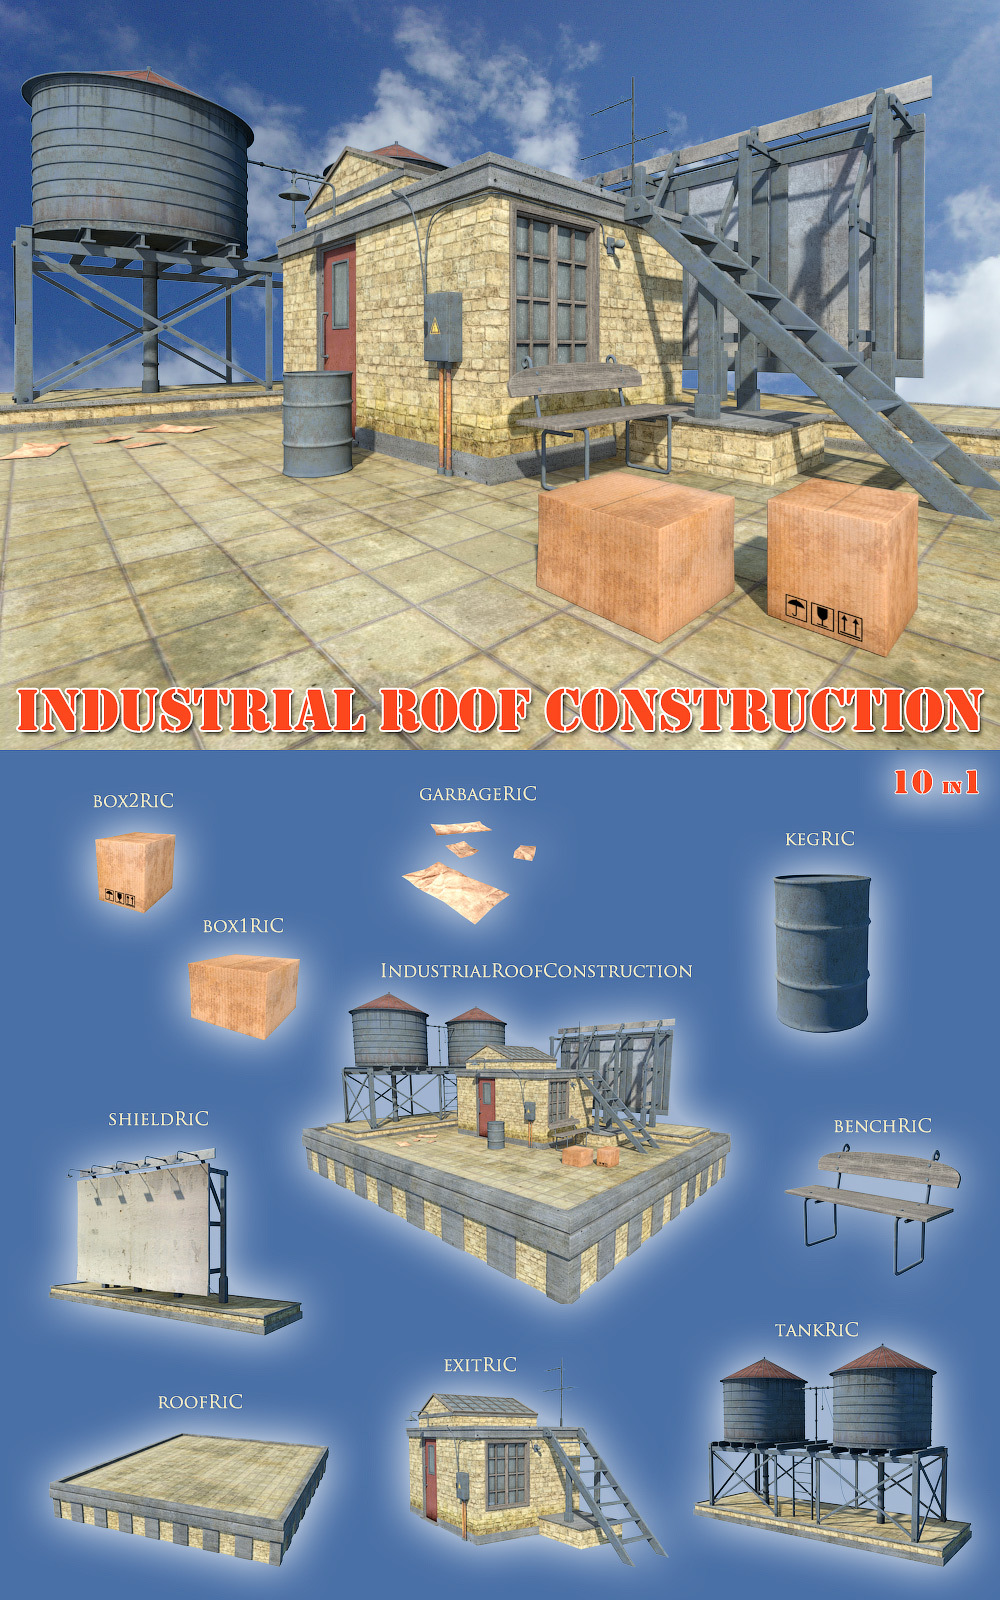 Industrial roof construction